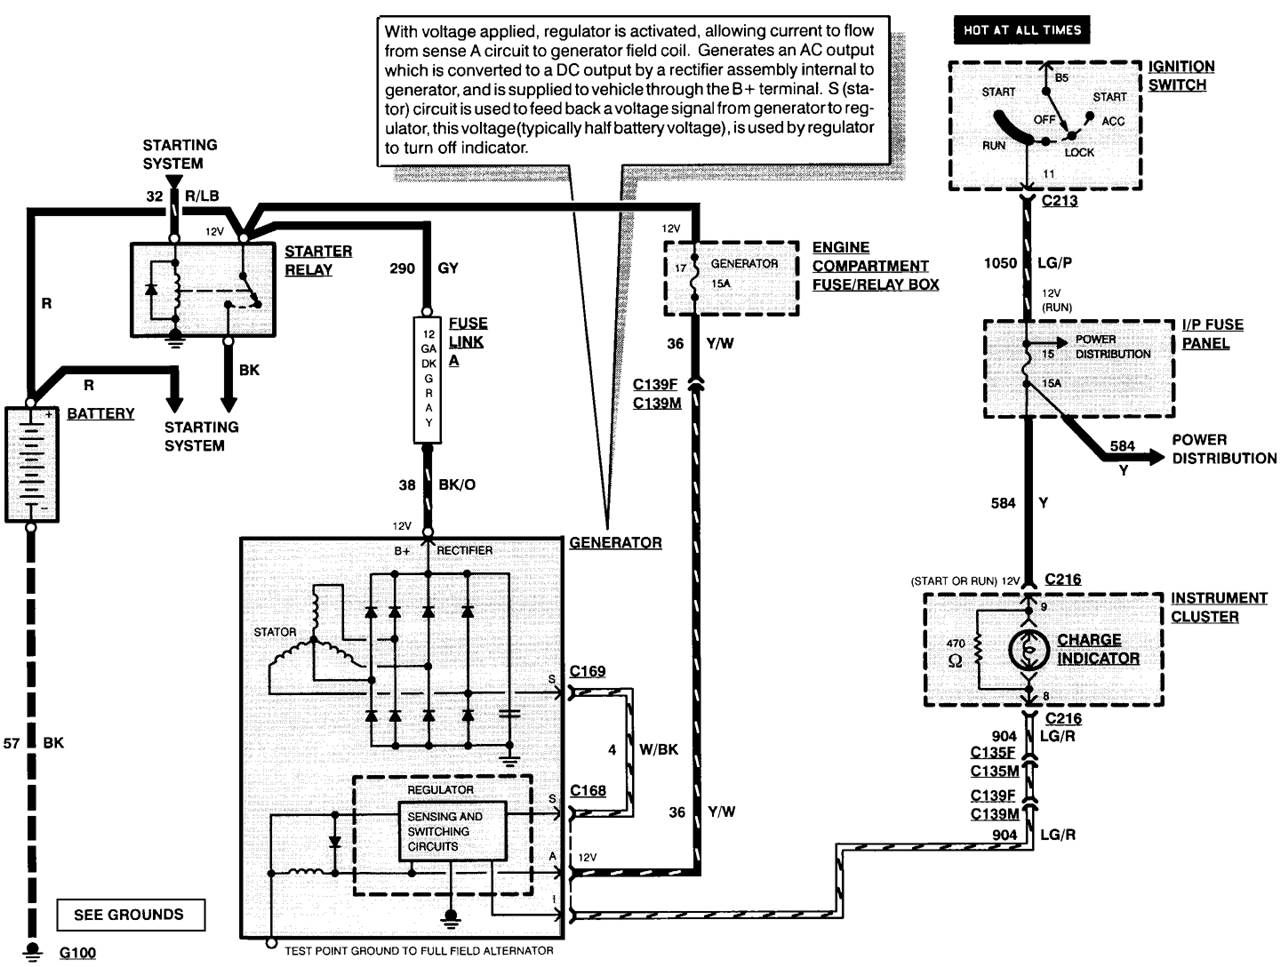 Ford alternator wiring diagram internal regulator ford alternator wiring diagrams carsut understand cars and ford diagrams schematics at edmiracle.co